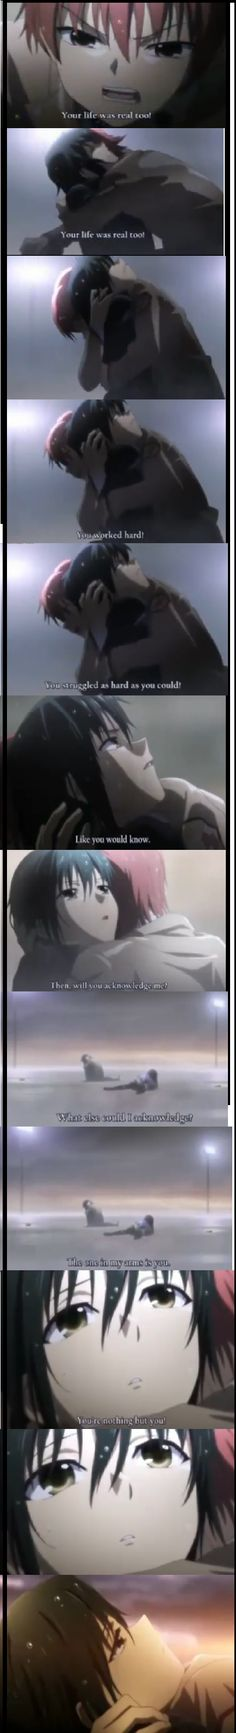 Random Angel Beats Yaoi moment by dark0kun